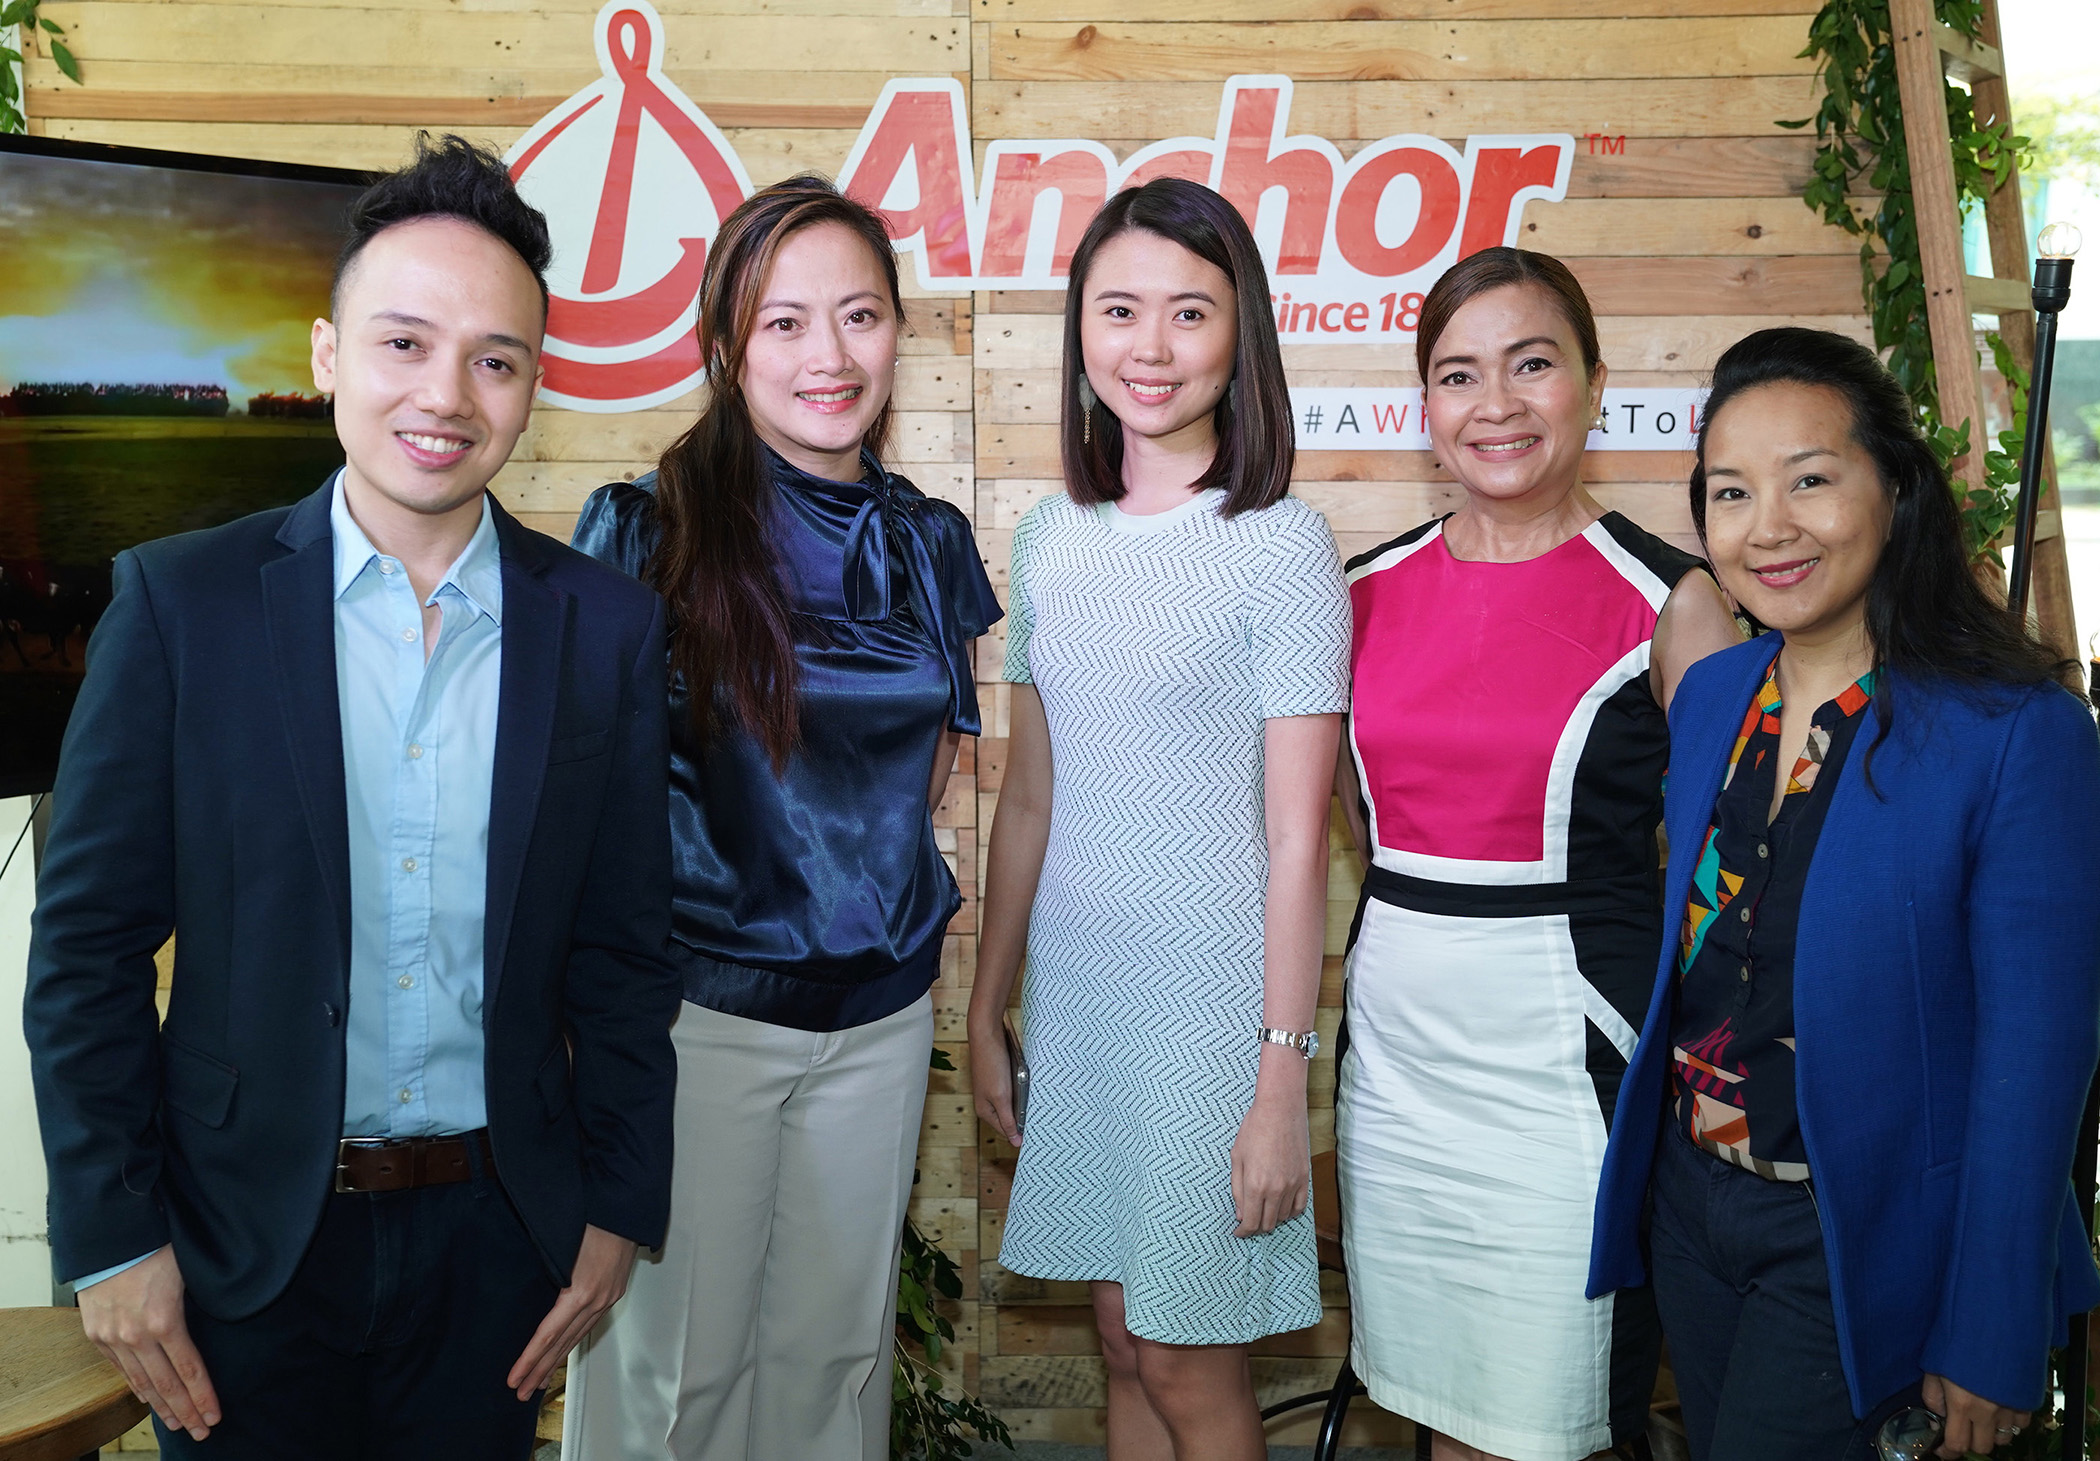 Fonterra Brands Philippines Inc.'s senior brand manager Chio Cebrero, marketing director Jasmin Magsajo, brand manager Rica Mateo, nutrition manager JV Salamat, and marketing consultant Katz Lobregat-Enriquez